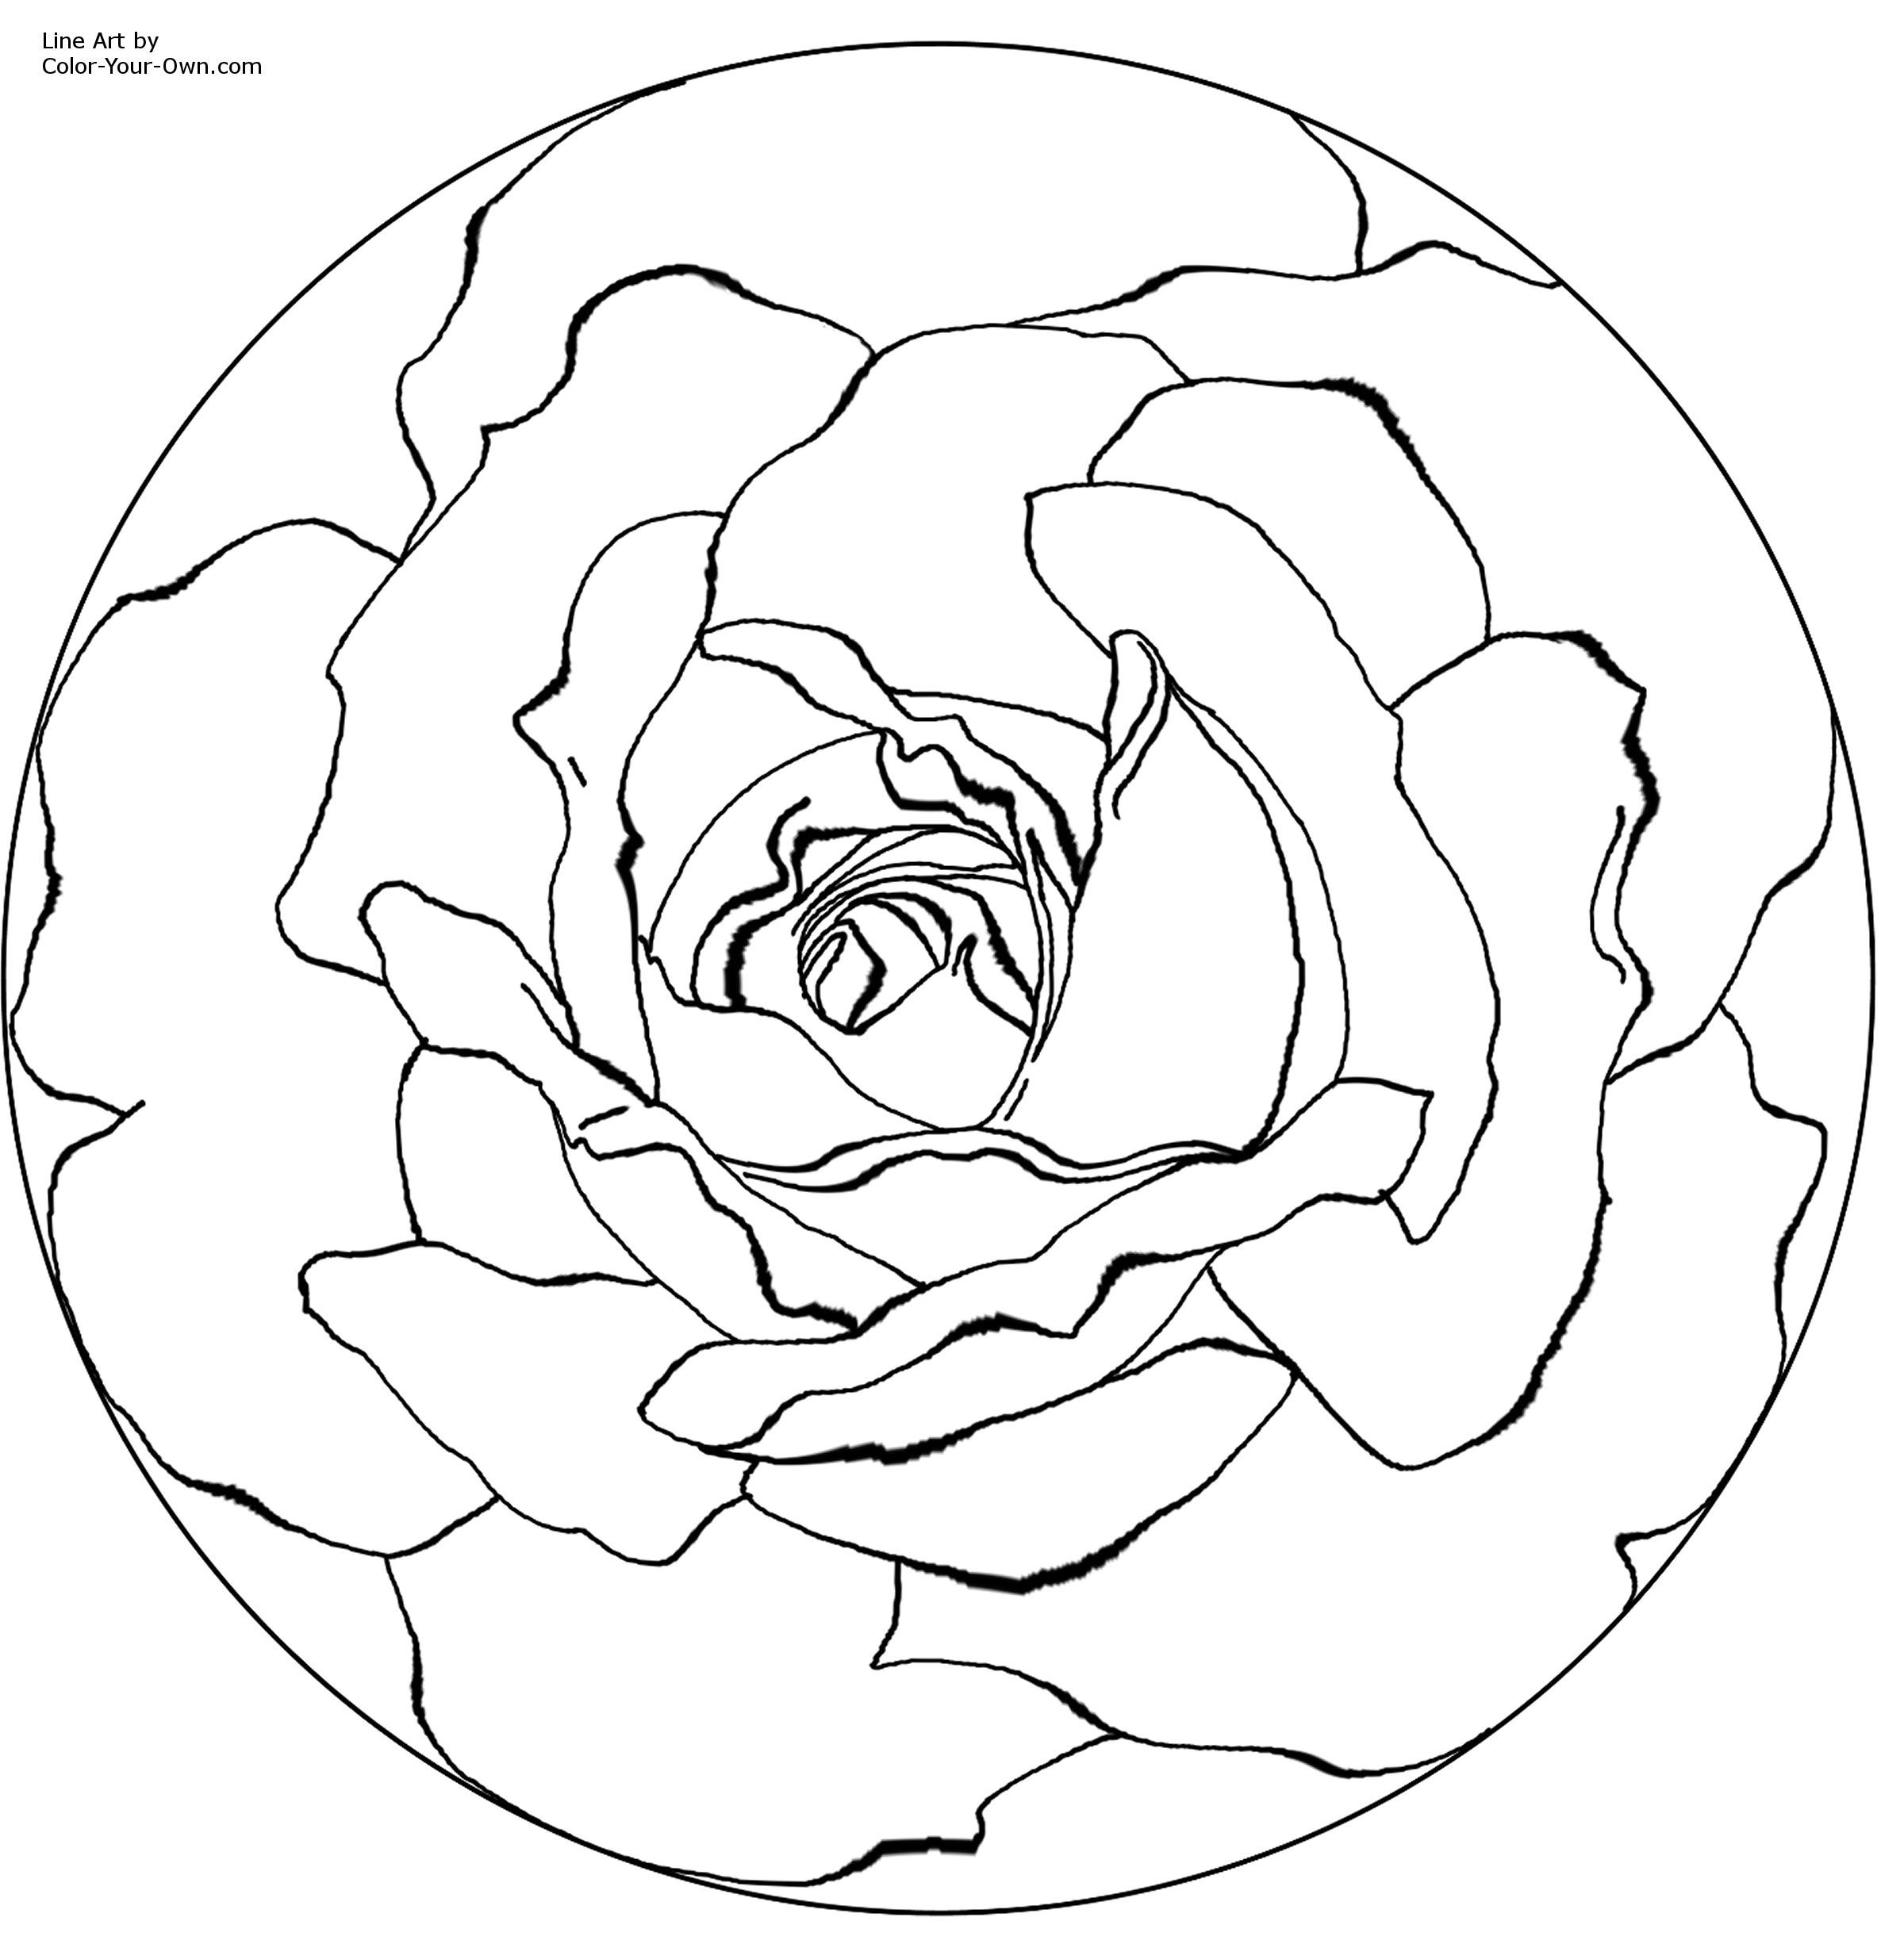 mandala coloring pages printable | mandala rose Colouring Pages ...